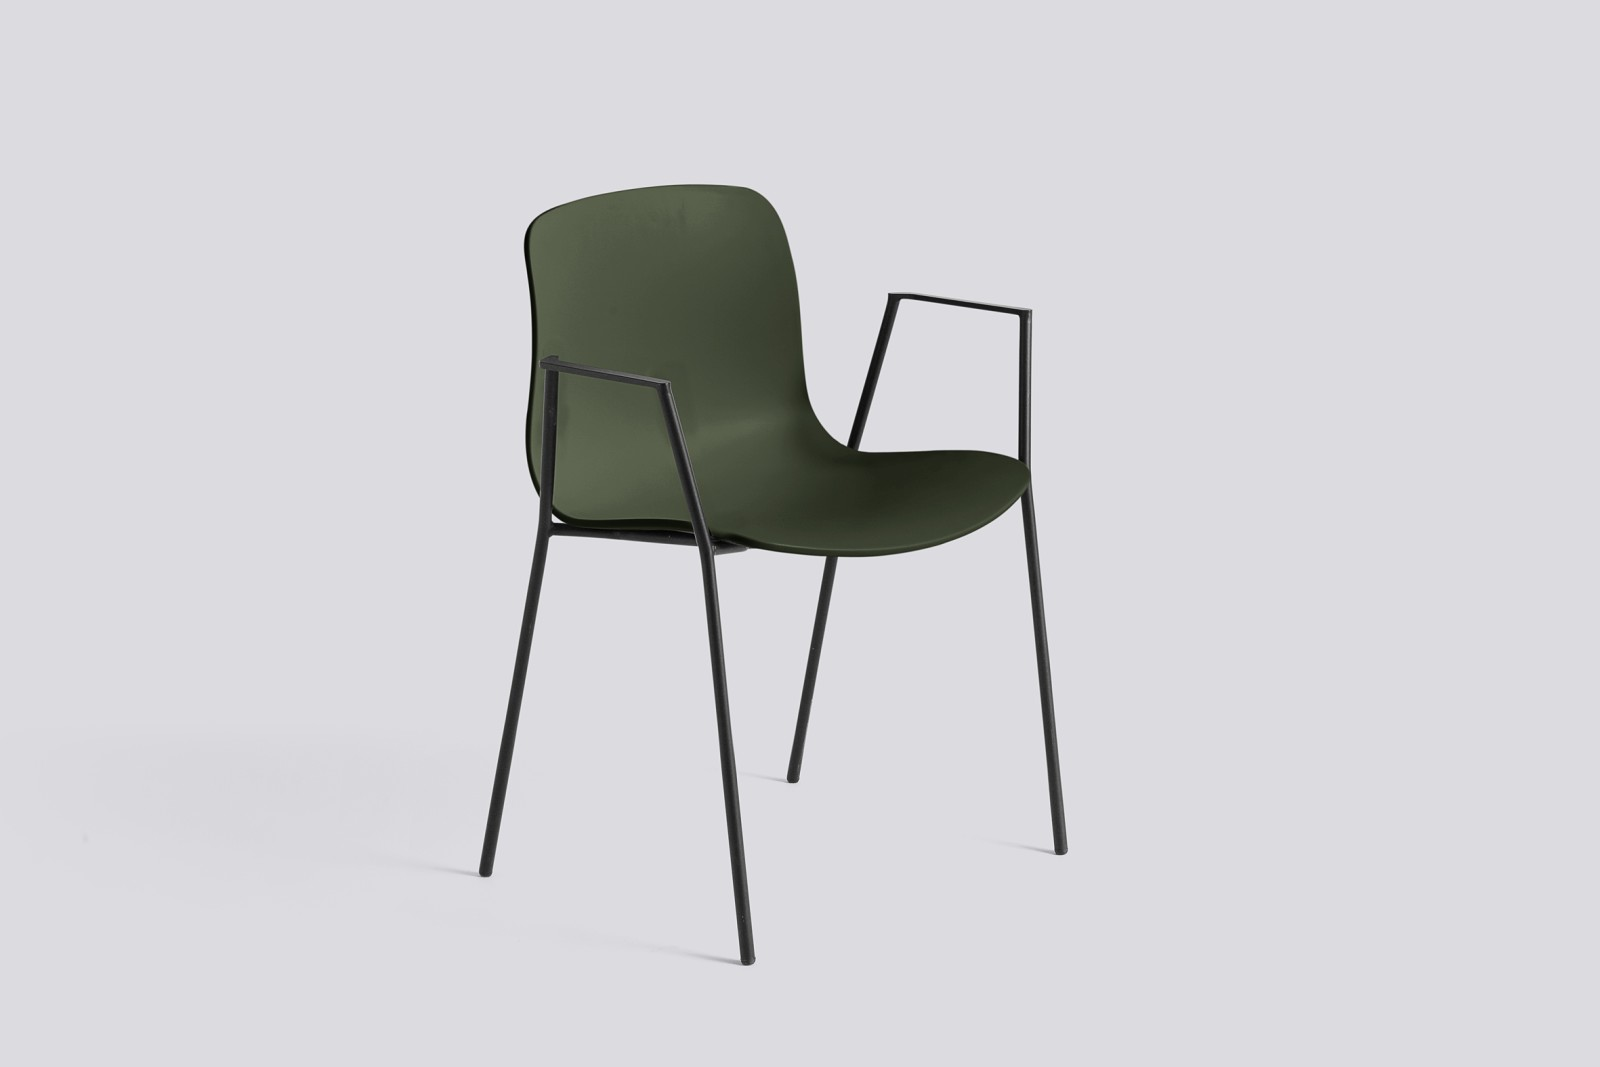 About A Chair AAC18 Green, Black Powder Coated Steel